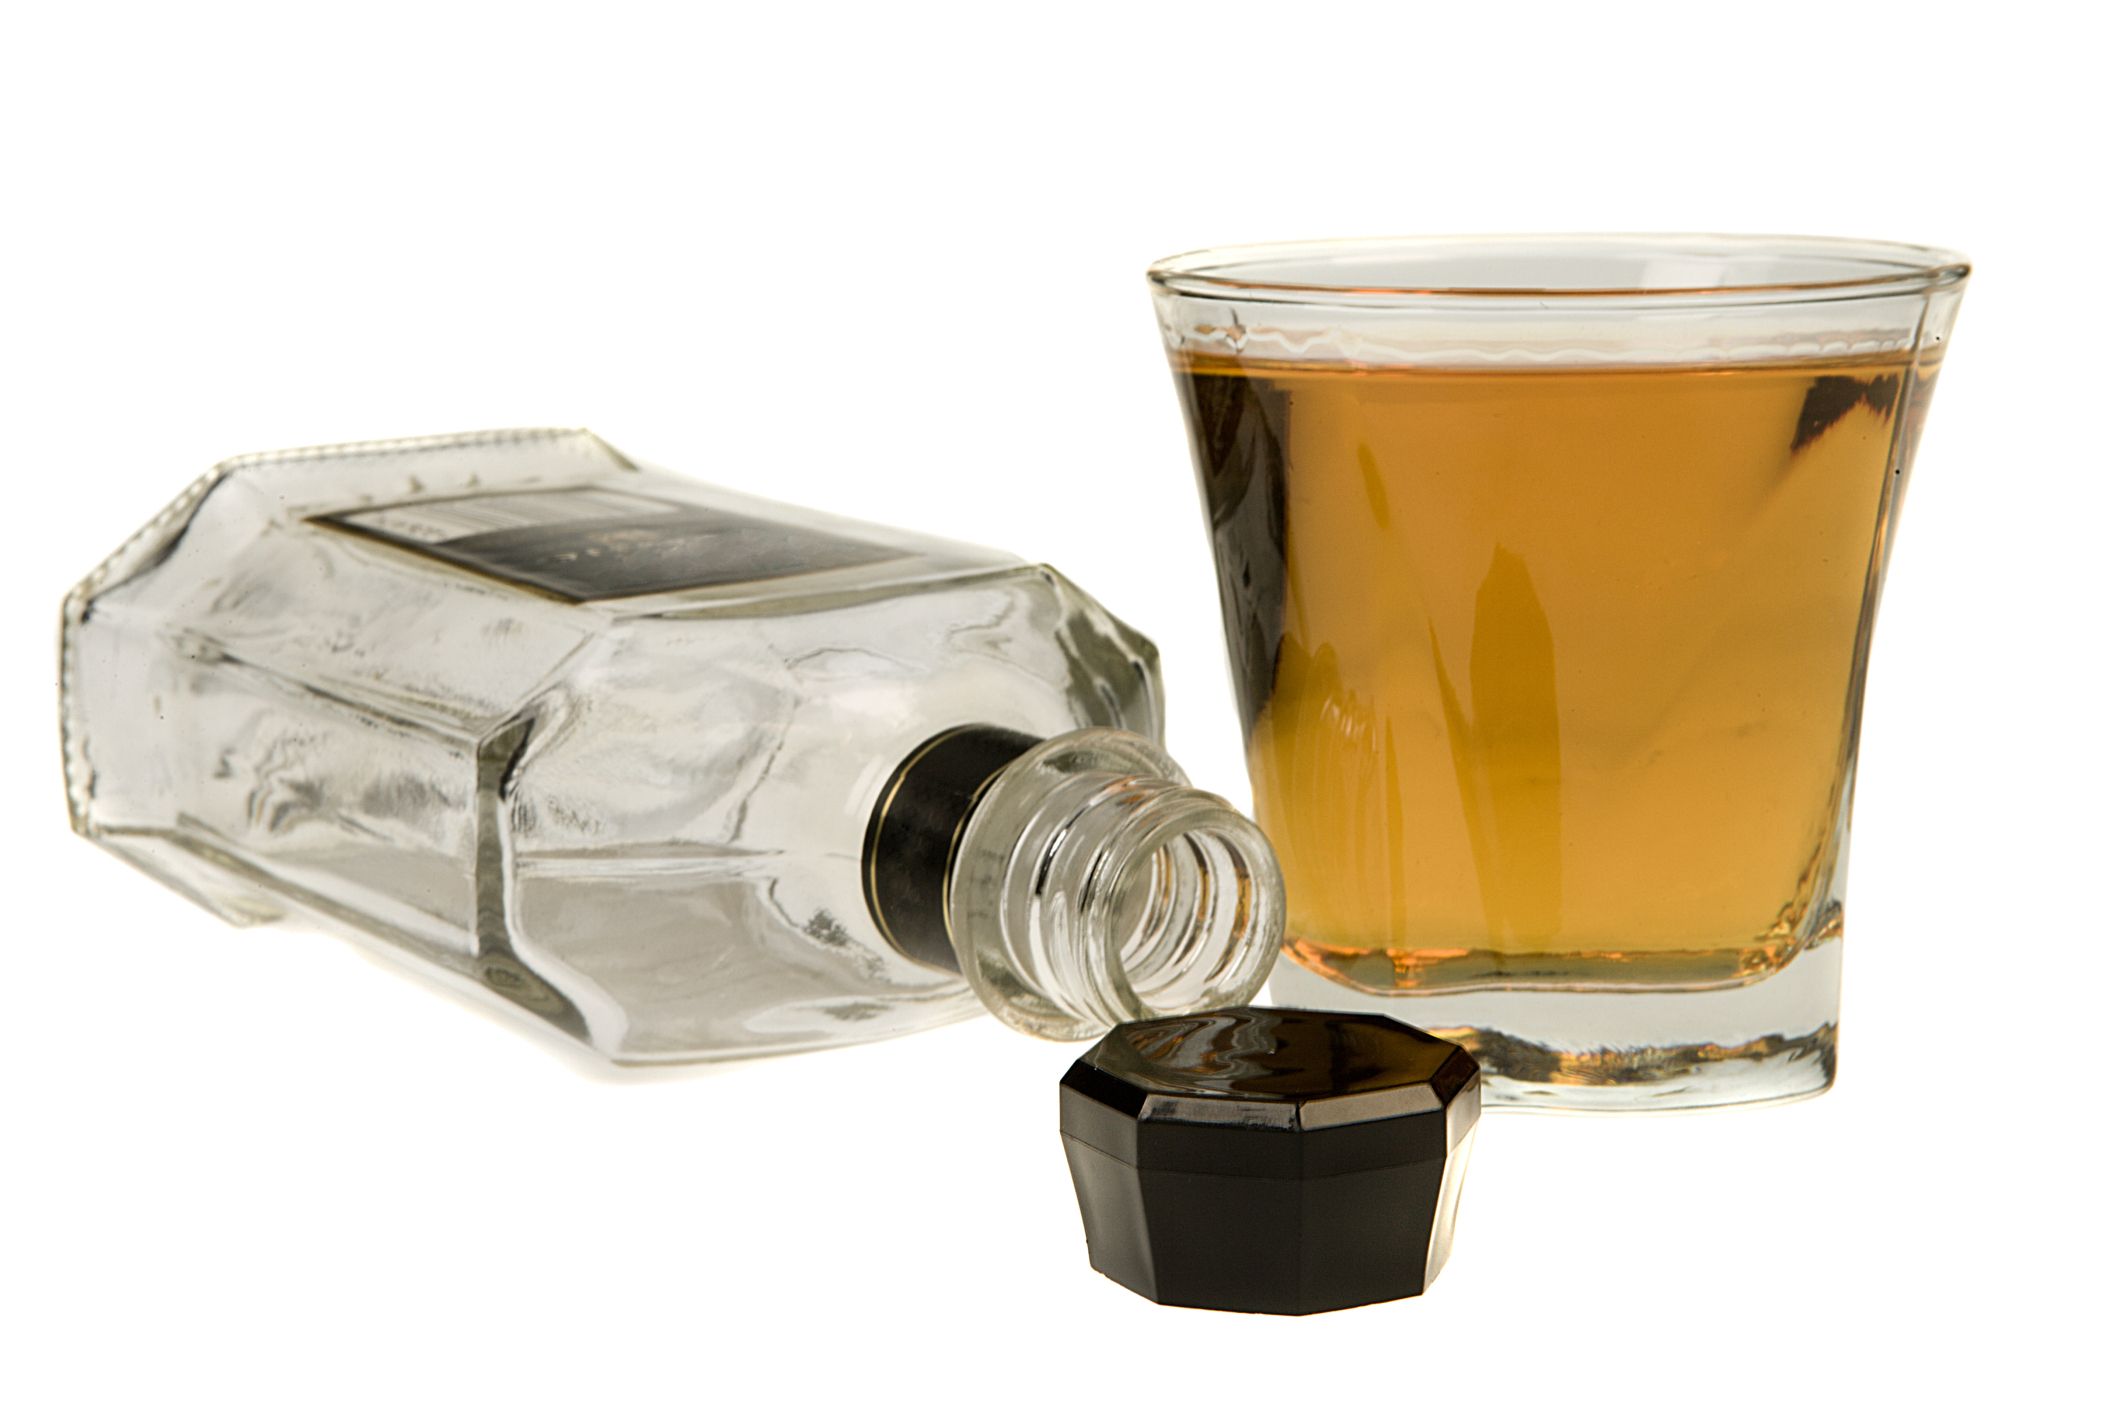 Can the Spleen be Affected by Alcohol?